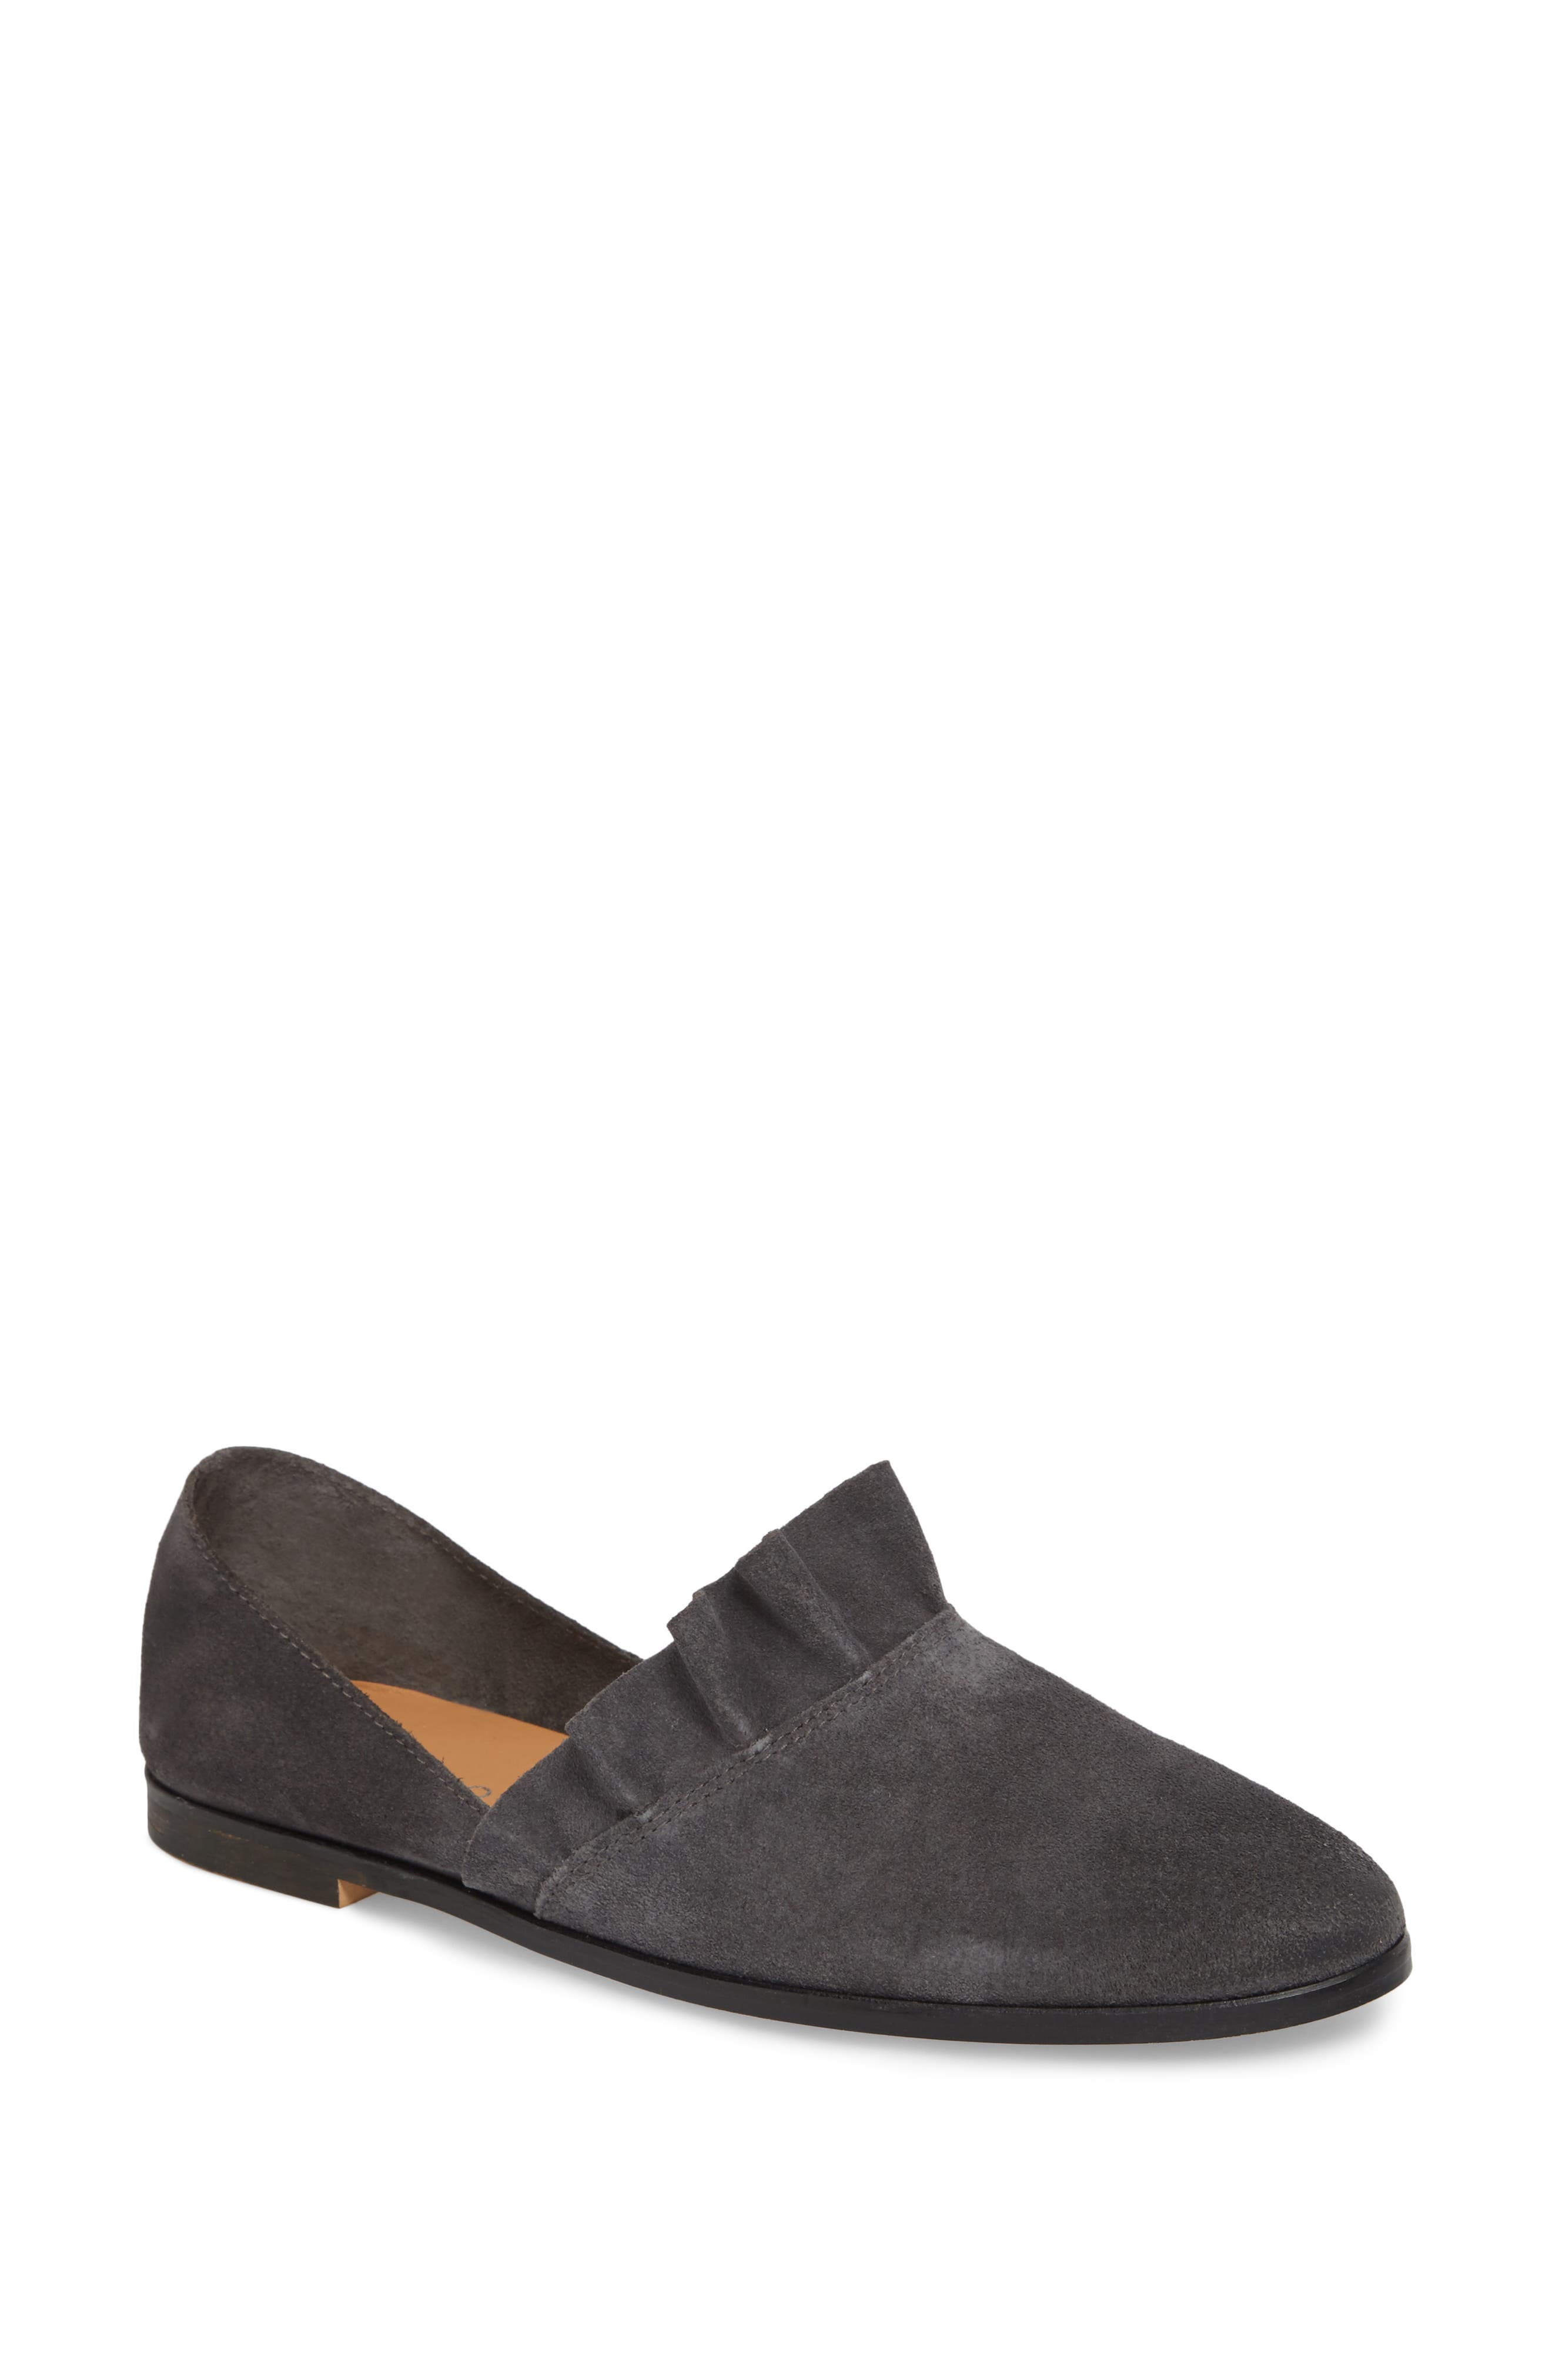 Gabbie Ruffle d'Orsay Flat,                             Main thumbnail 1, color,                             Ink Suede